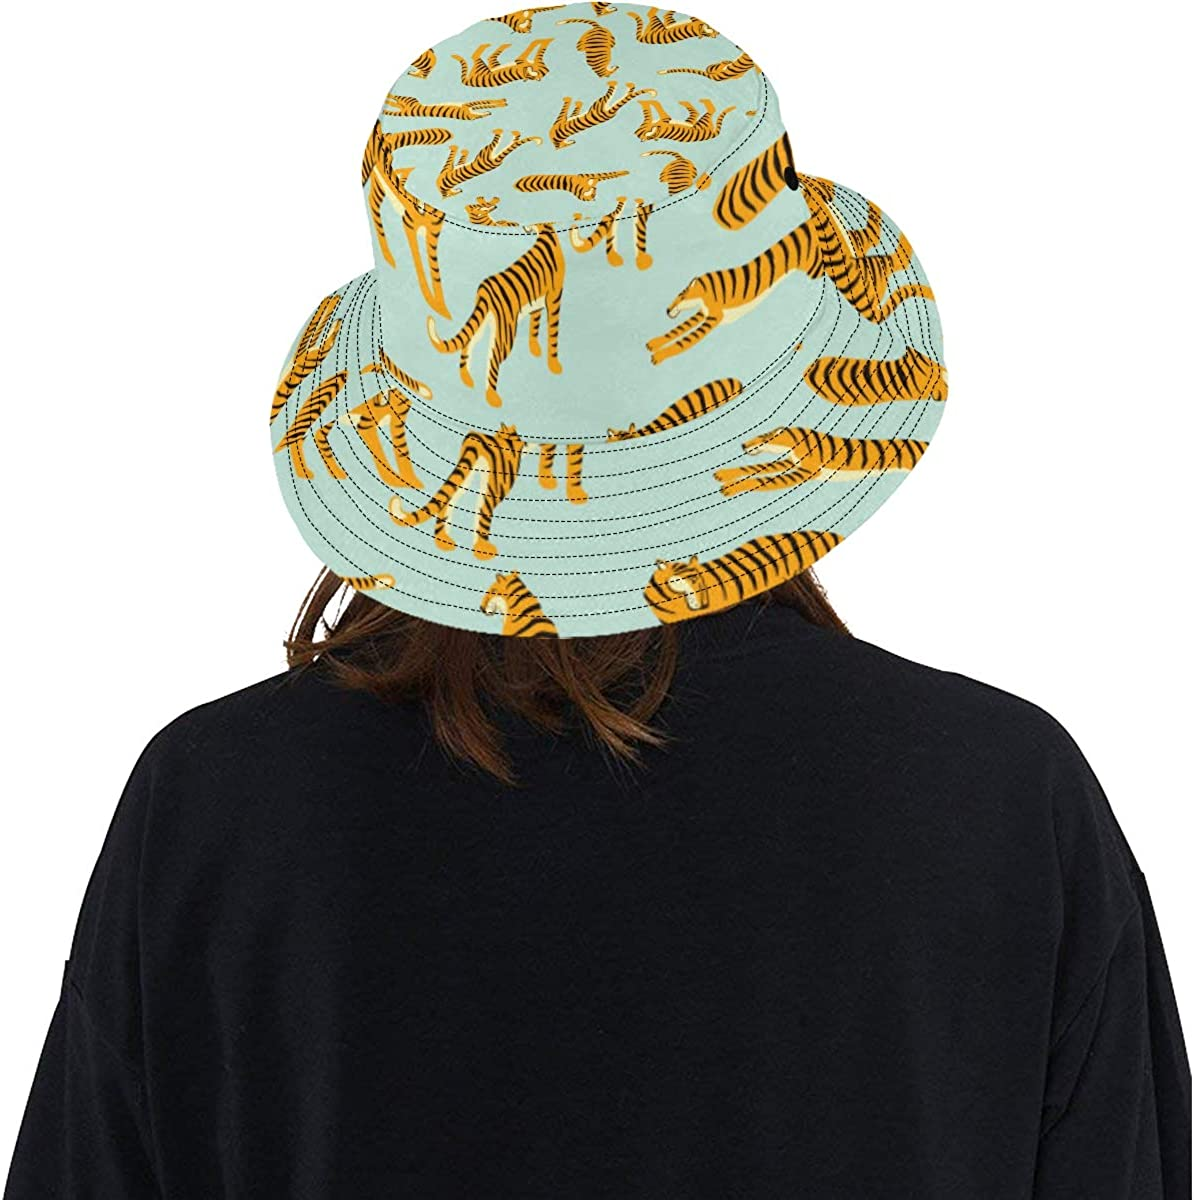 Tiger Leopard Pattern Fashion Accessary Summer Unisex Fishing Sun Top Bucket Hats for Kid Teens Women and Men with Packable Fisherman Cap for Outdoor Baseball Sport Picnic